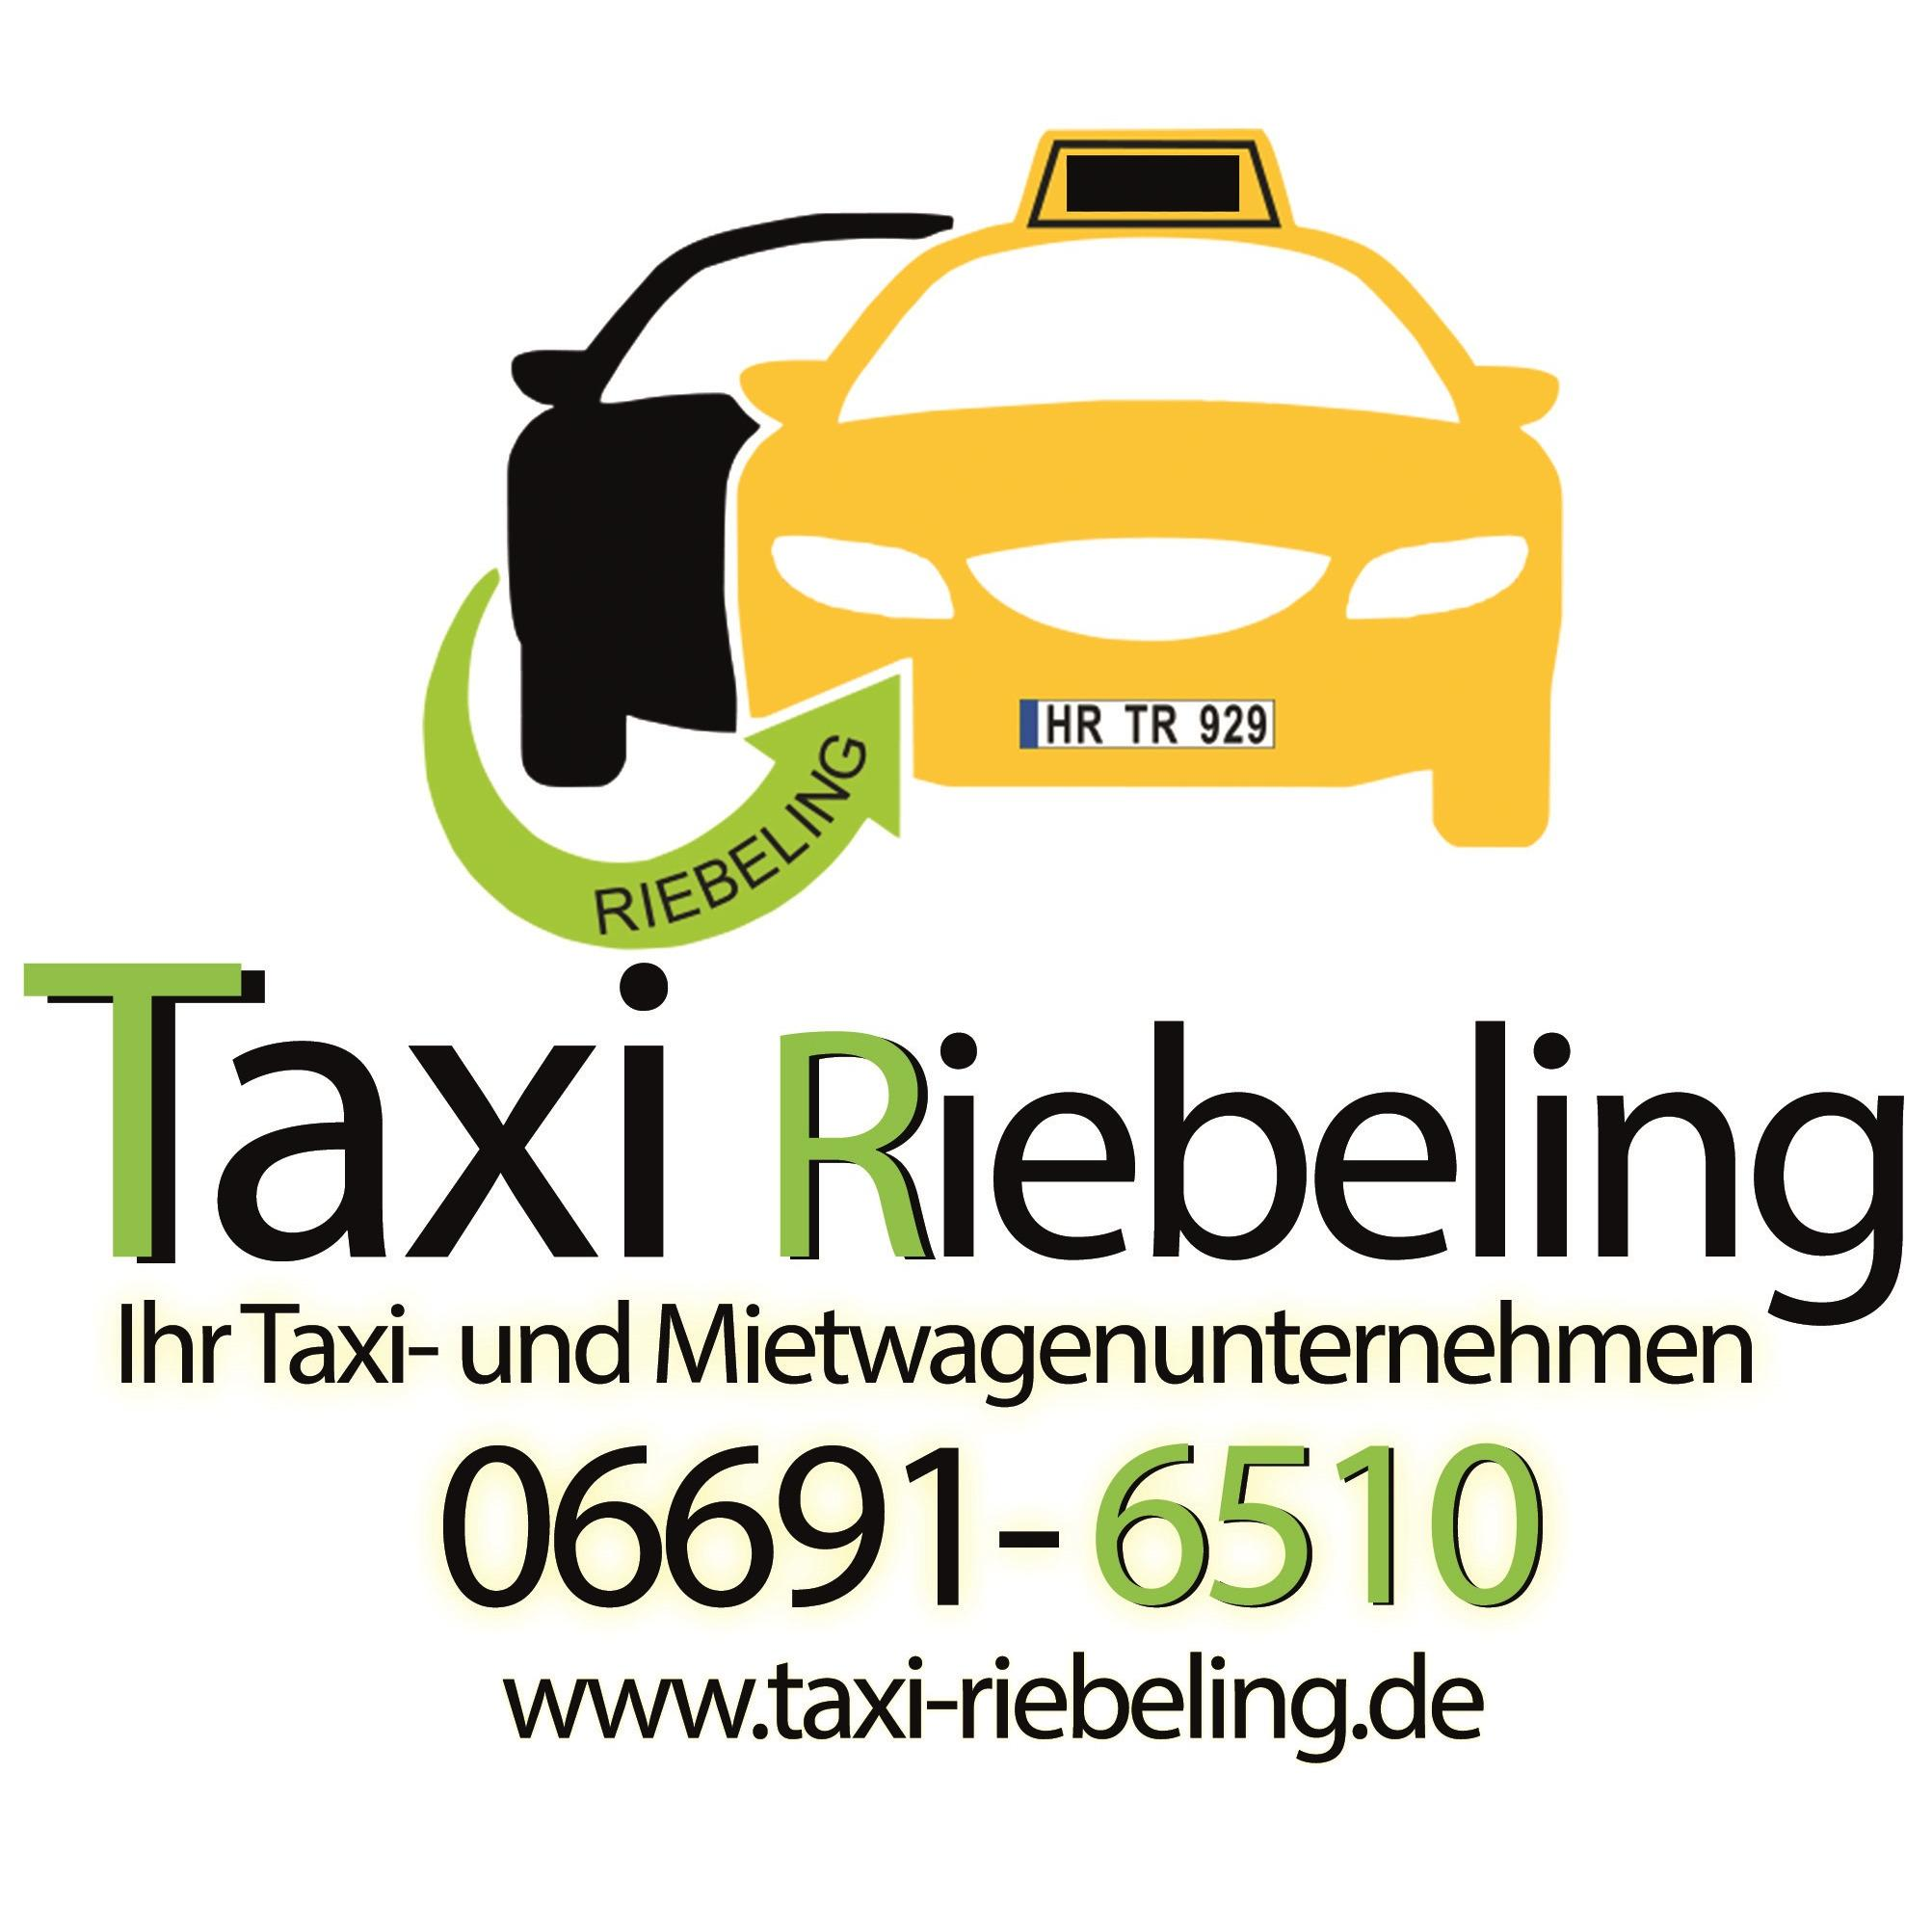 Taxi Riebeling